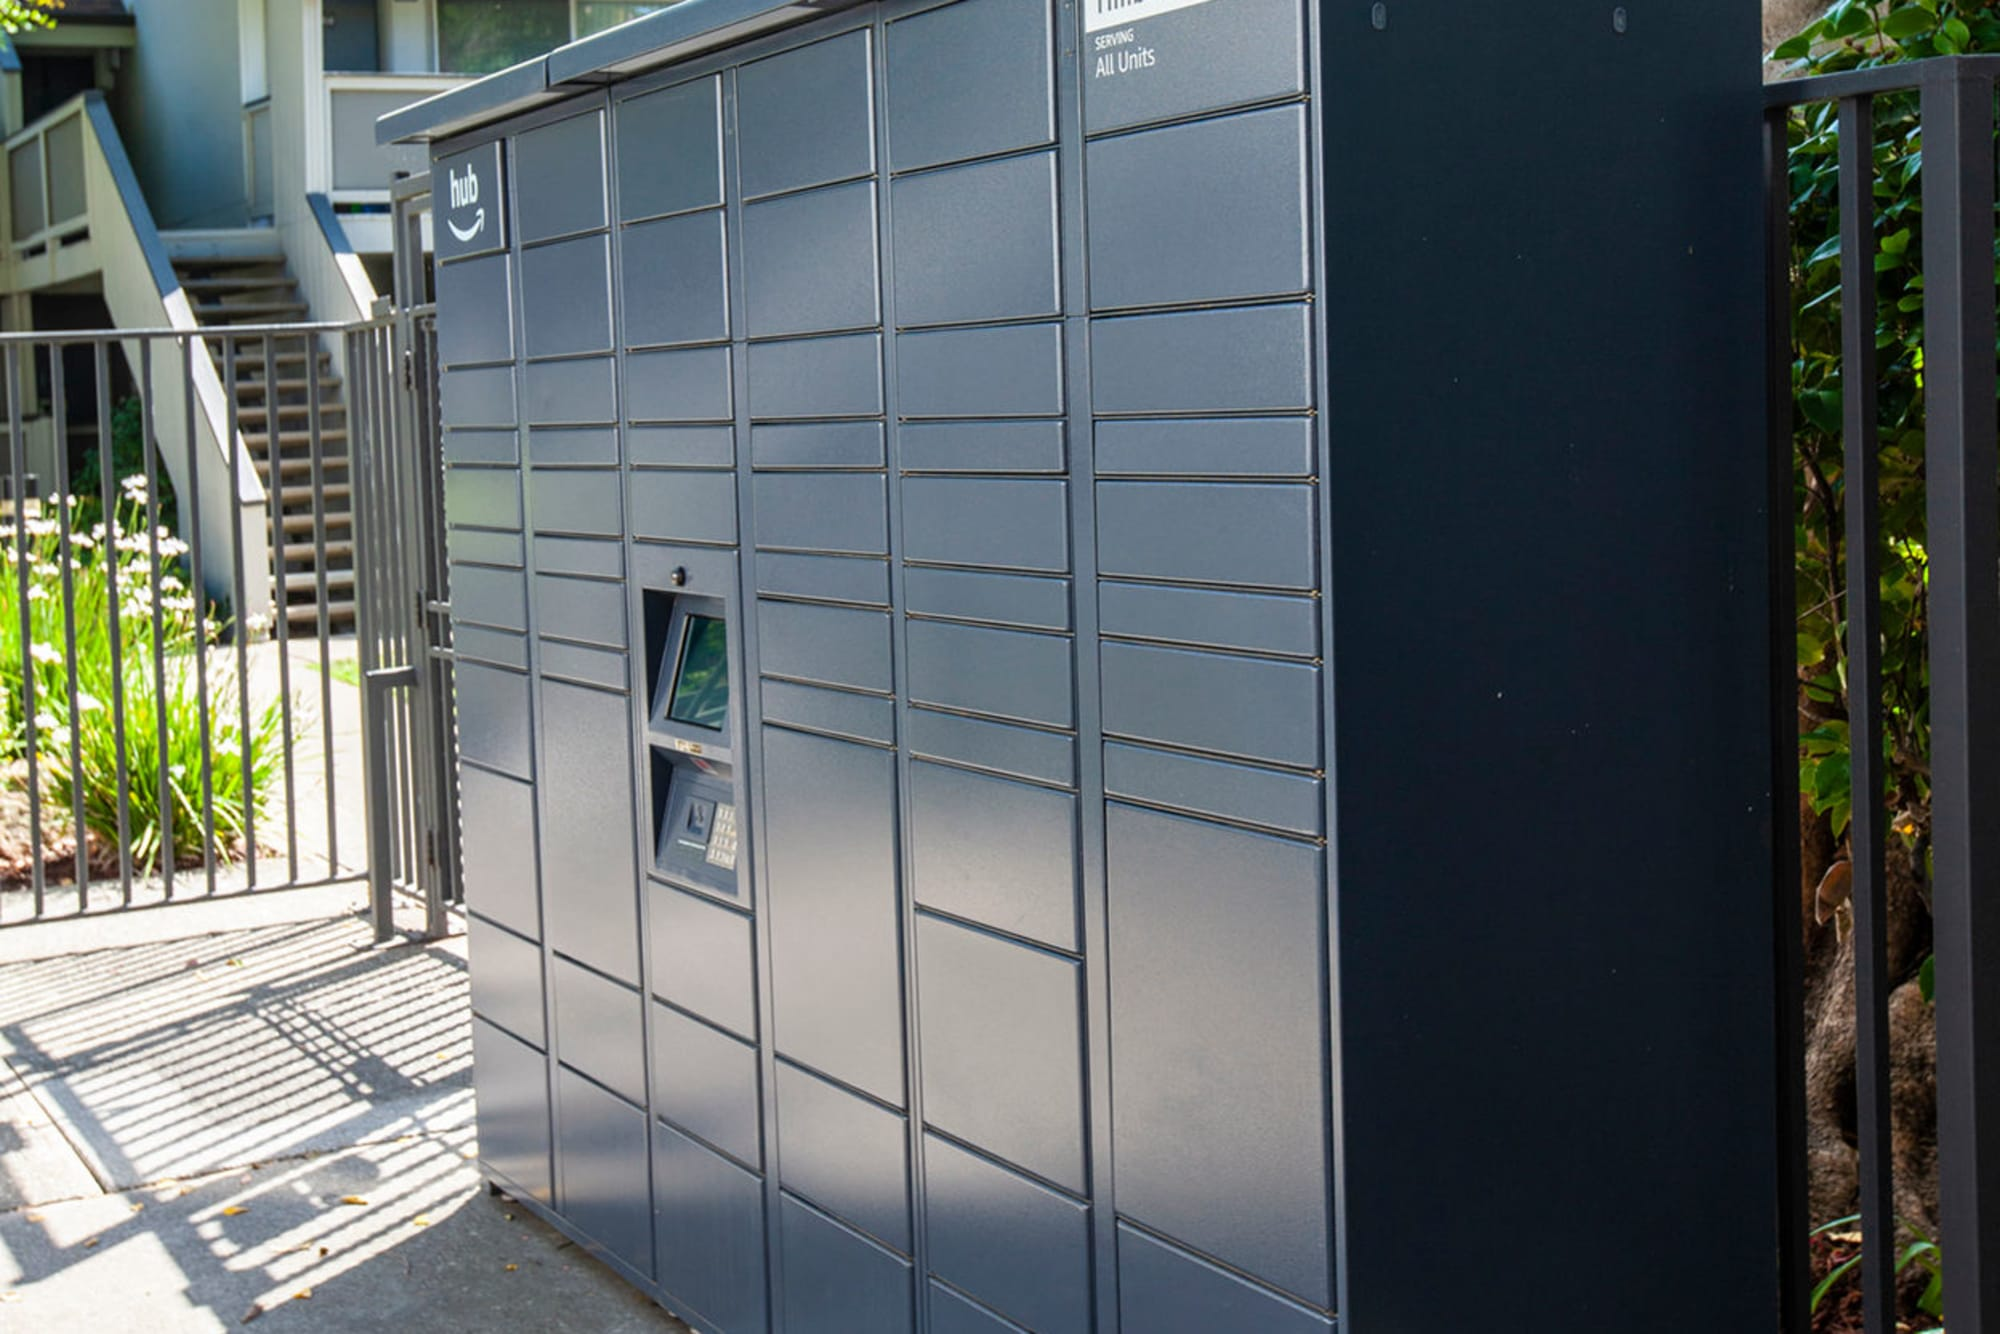 24-hour package locker system with Amazon HUB at The Timbers Apartments in Hayward, California